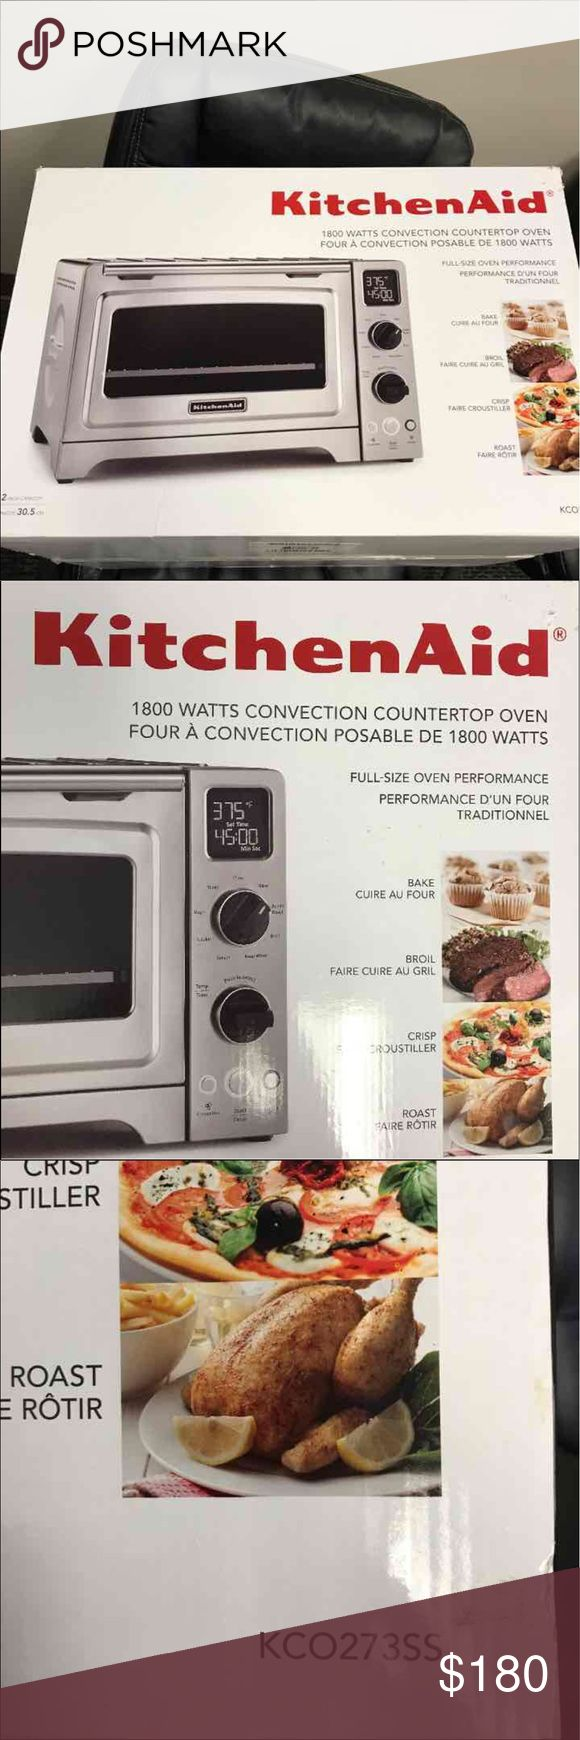 KitchenAid 1800 watts convection countertop oven. Brand new KitchenAid 1800 watts convection countertop oven. Never been used or opened. Retail price is 250.00. Model number is KCO273SS. Other